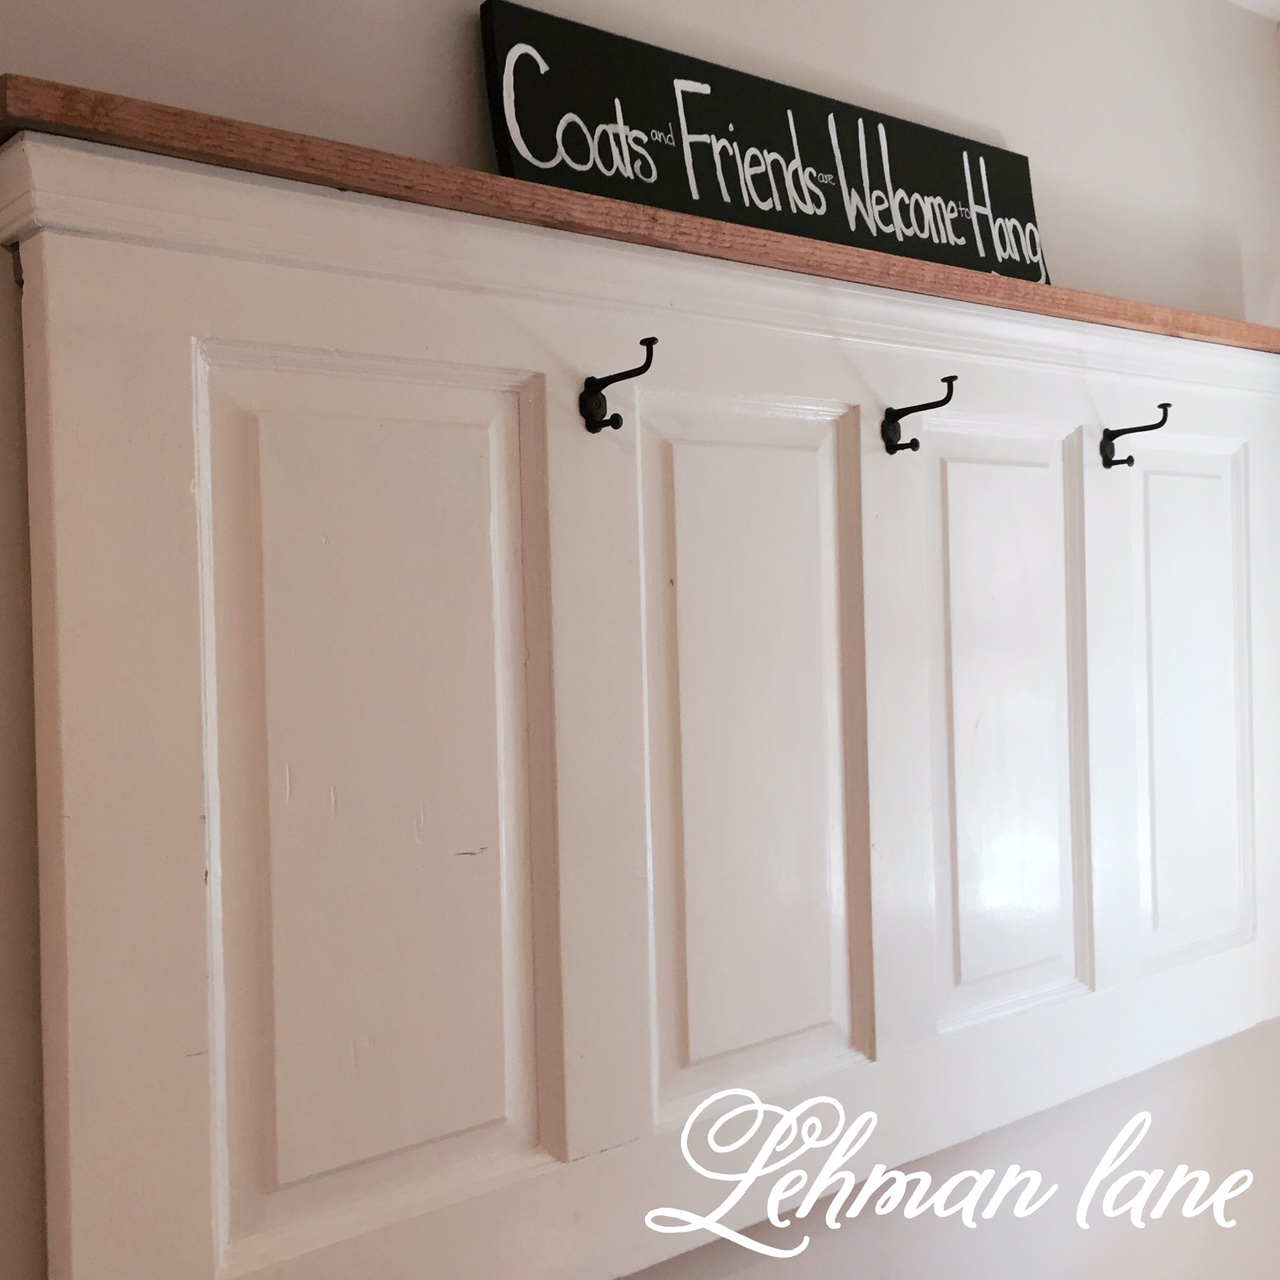 Le Meilleur Diy Old Door Turned Coat Rack Lehman Lane Ce Mois Ci